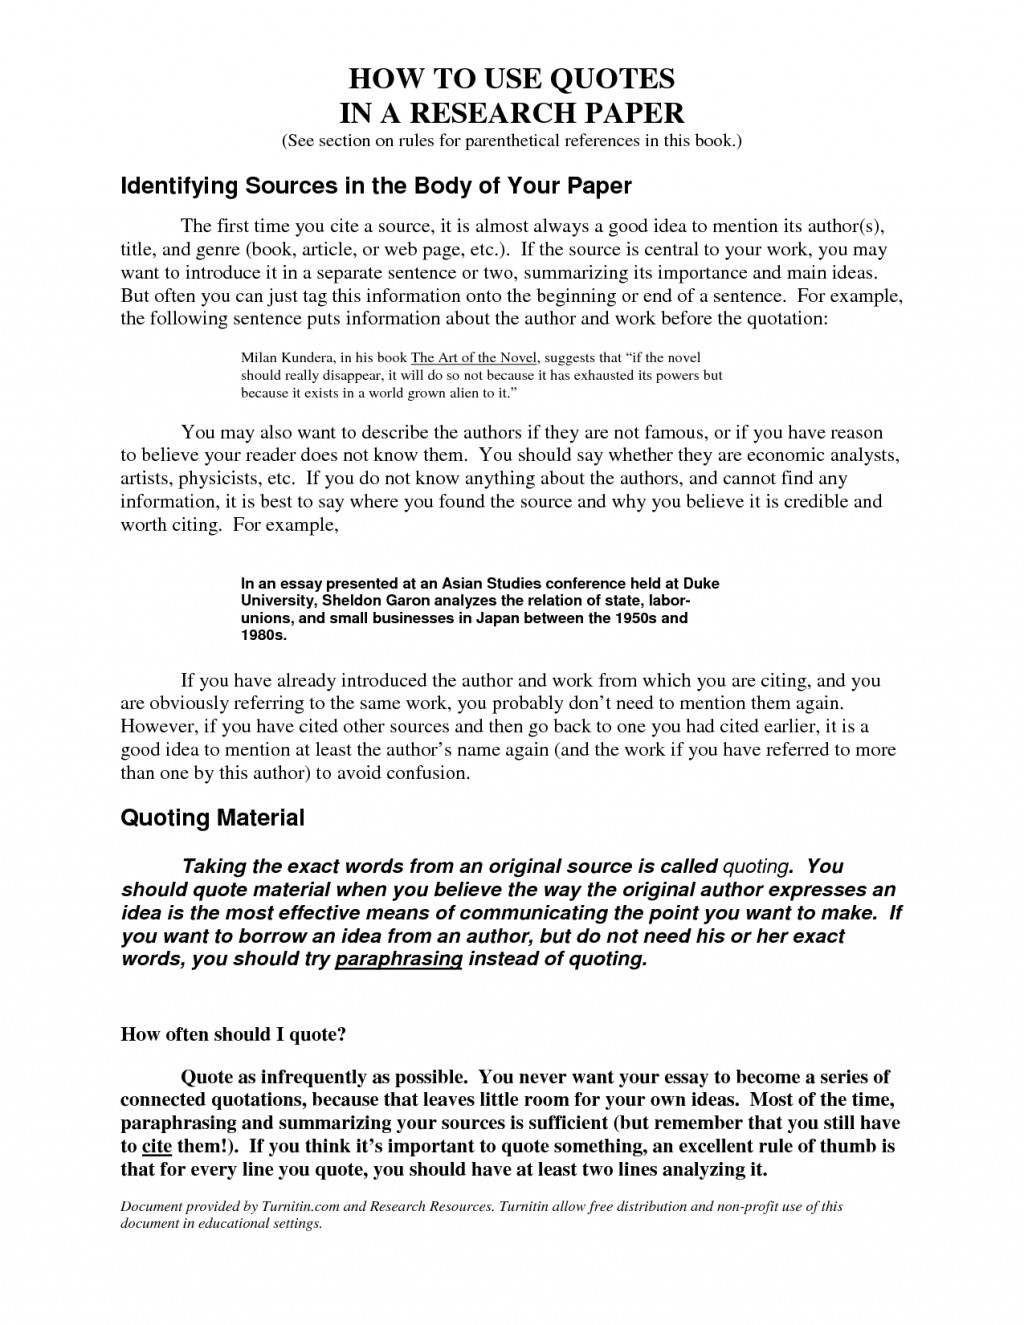 003 Best Solutions Of Writing Quotes In Essays Marvelous Embedding On Quotestopics Essay Example Quoting Frightening An A Website Harvard Dialogue Book Mla Large